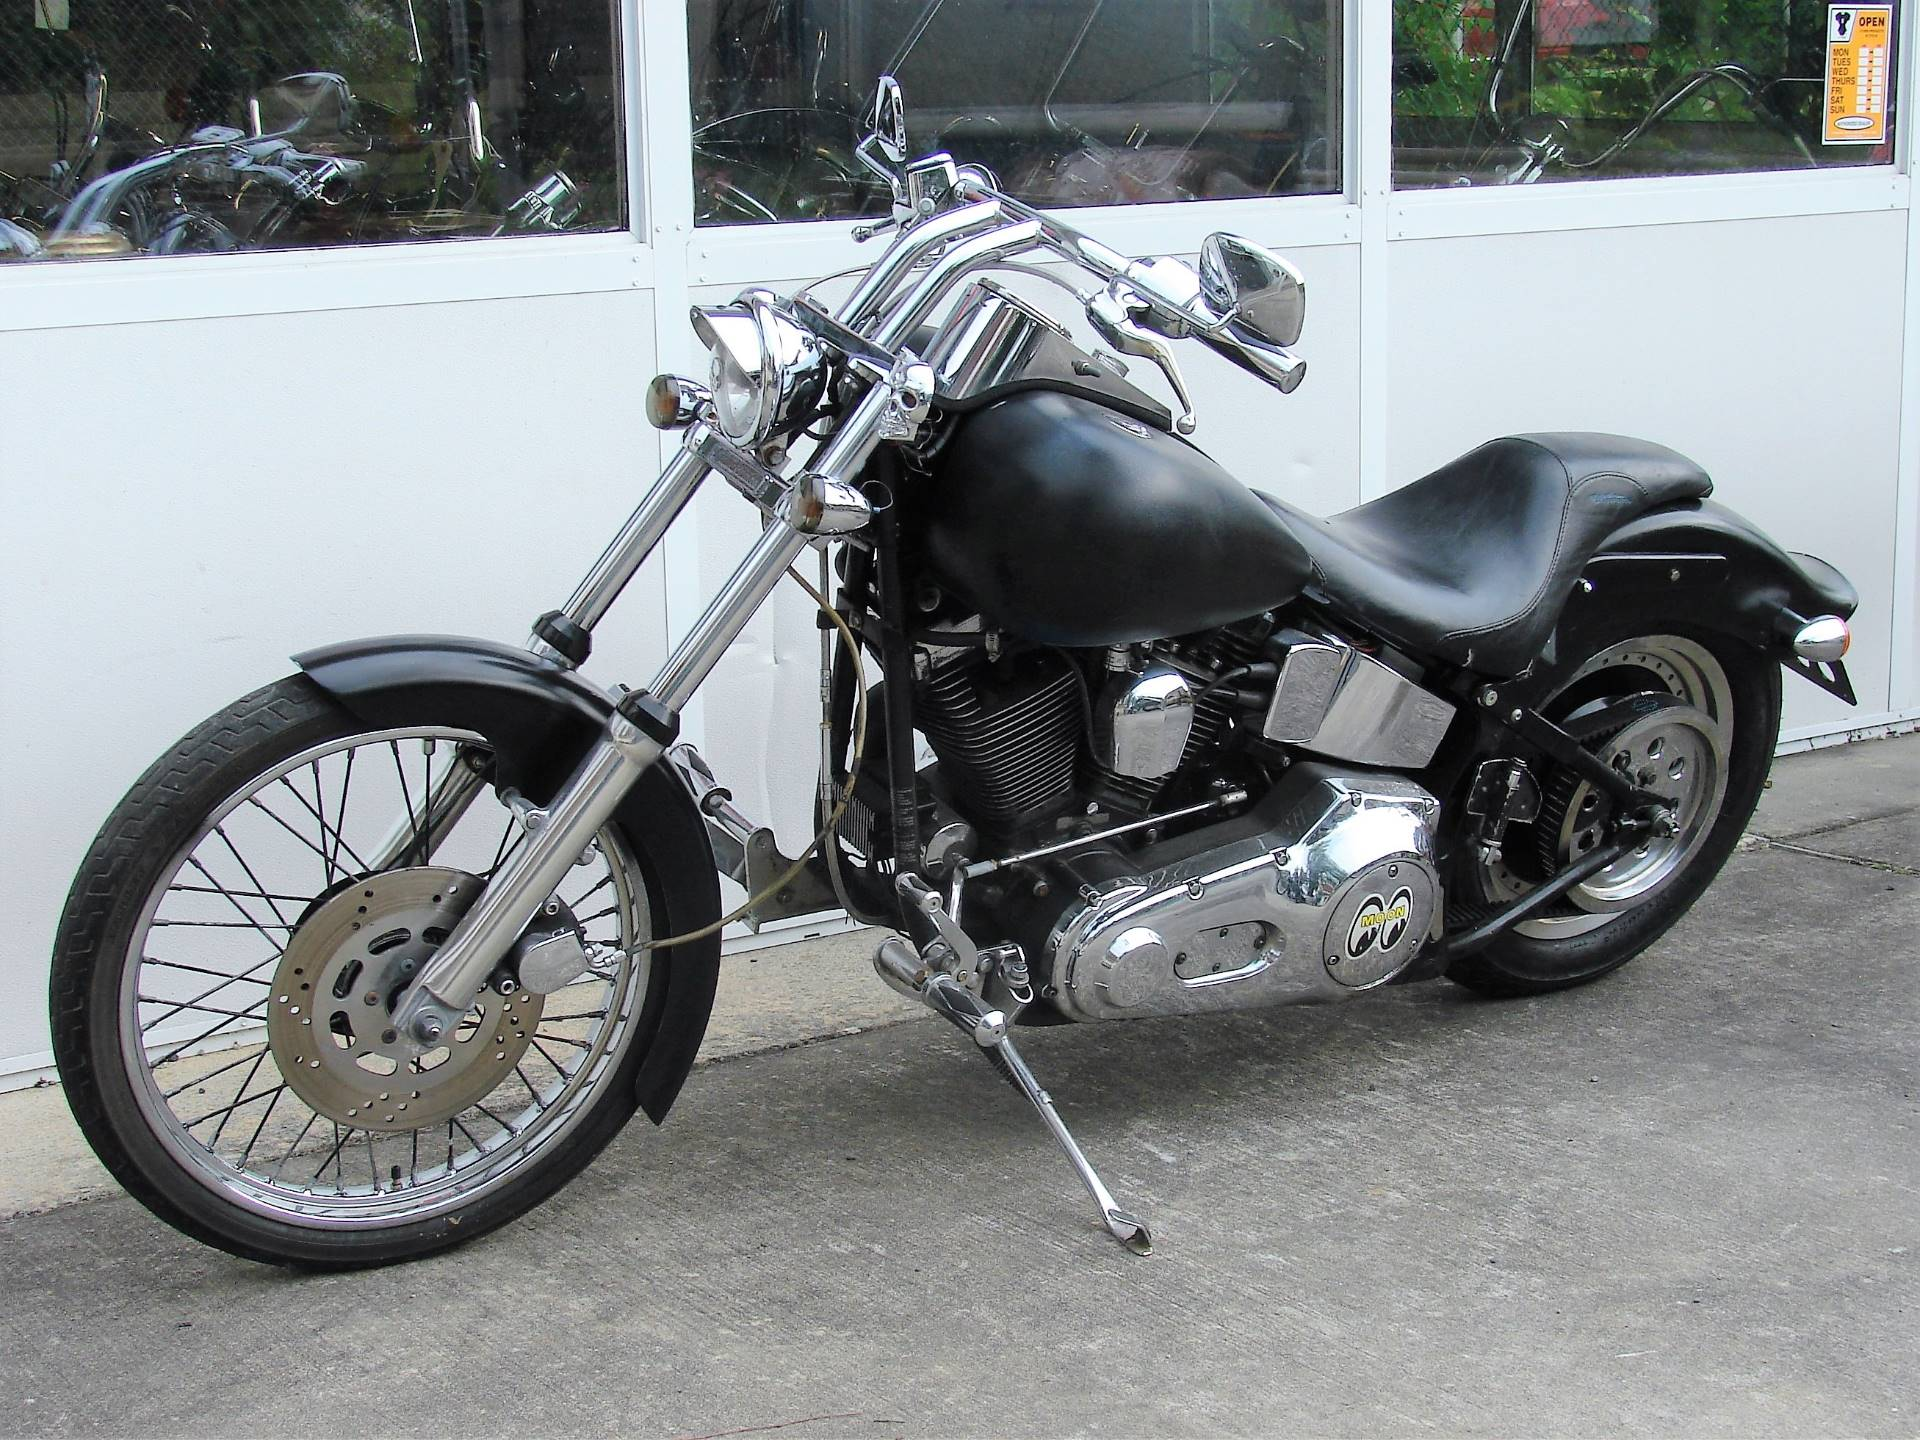 1998 Harley-Davidson FXSTC Softail Custom  (Black) in Williamstown, New Jersey - Photo 6